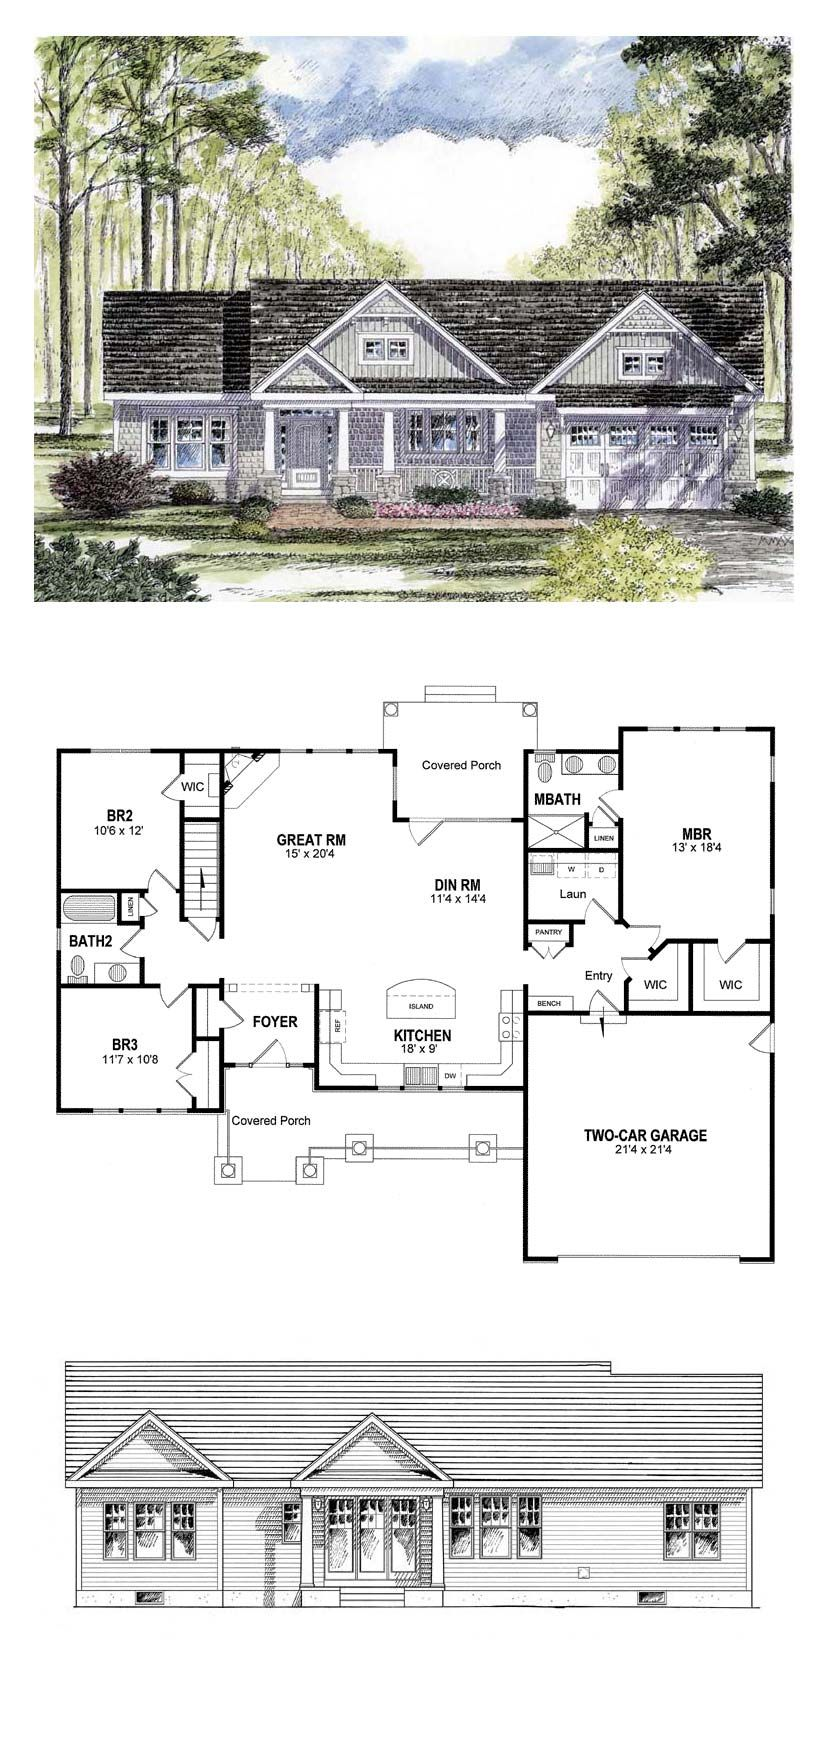 ranch house plan 94182 total living area 1720 sq ft 3 bedrooms rh pinterest com